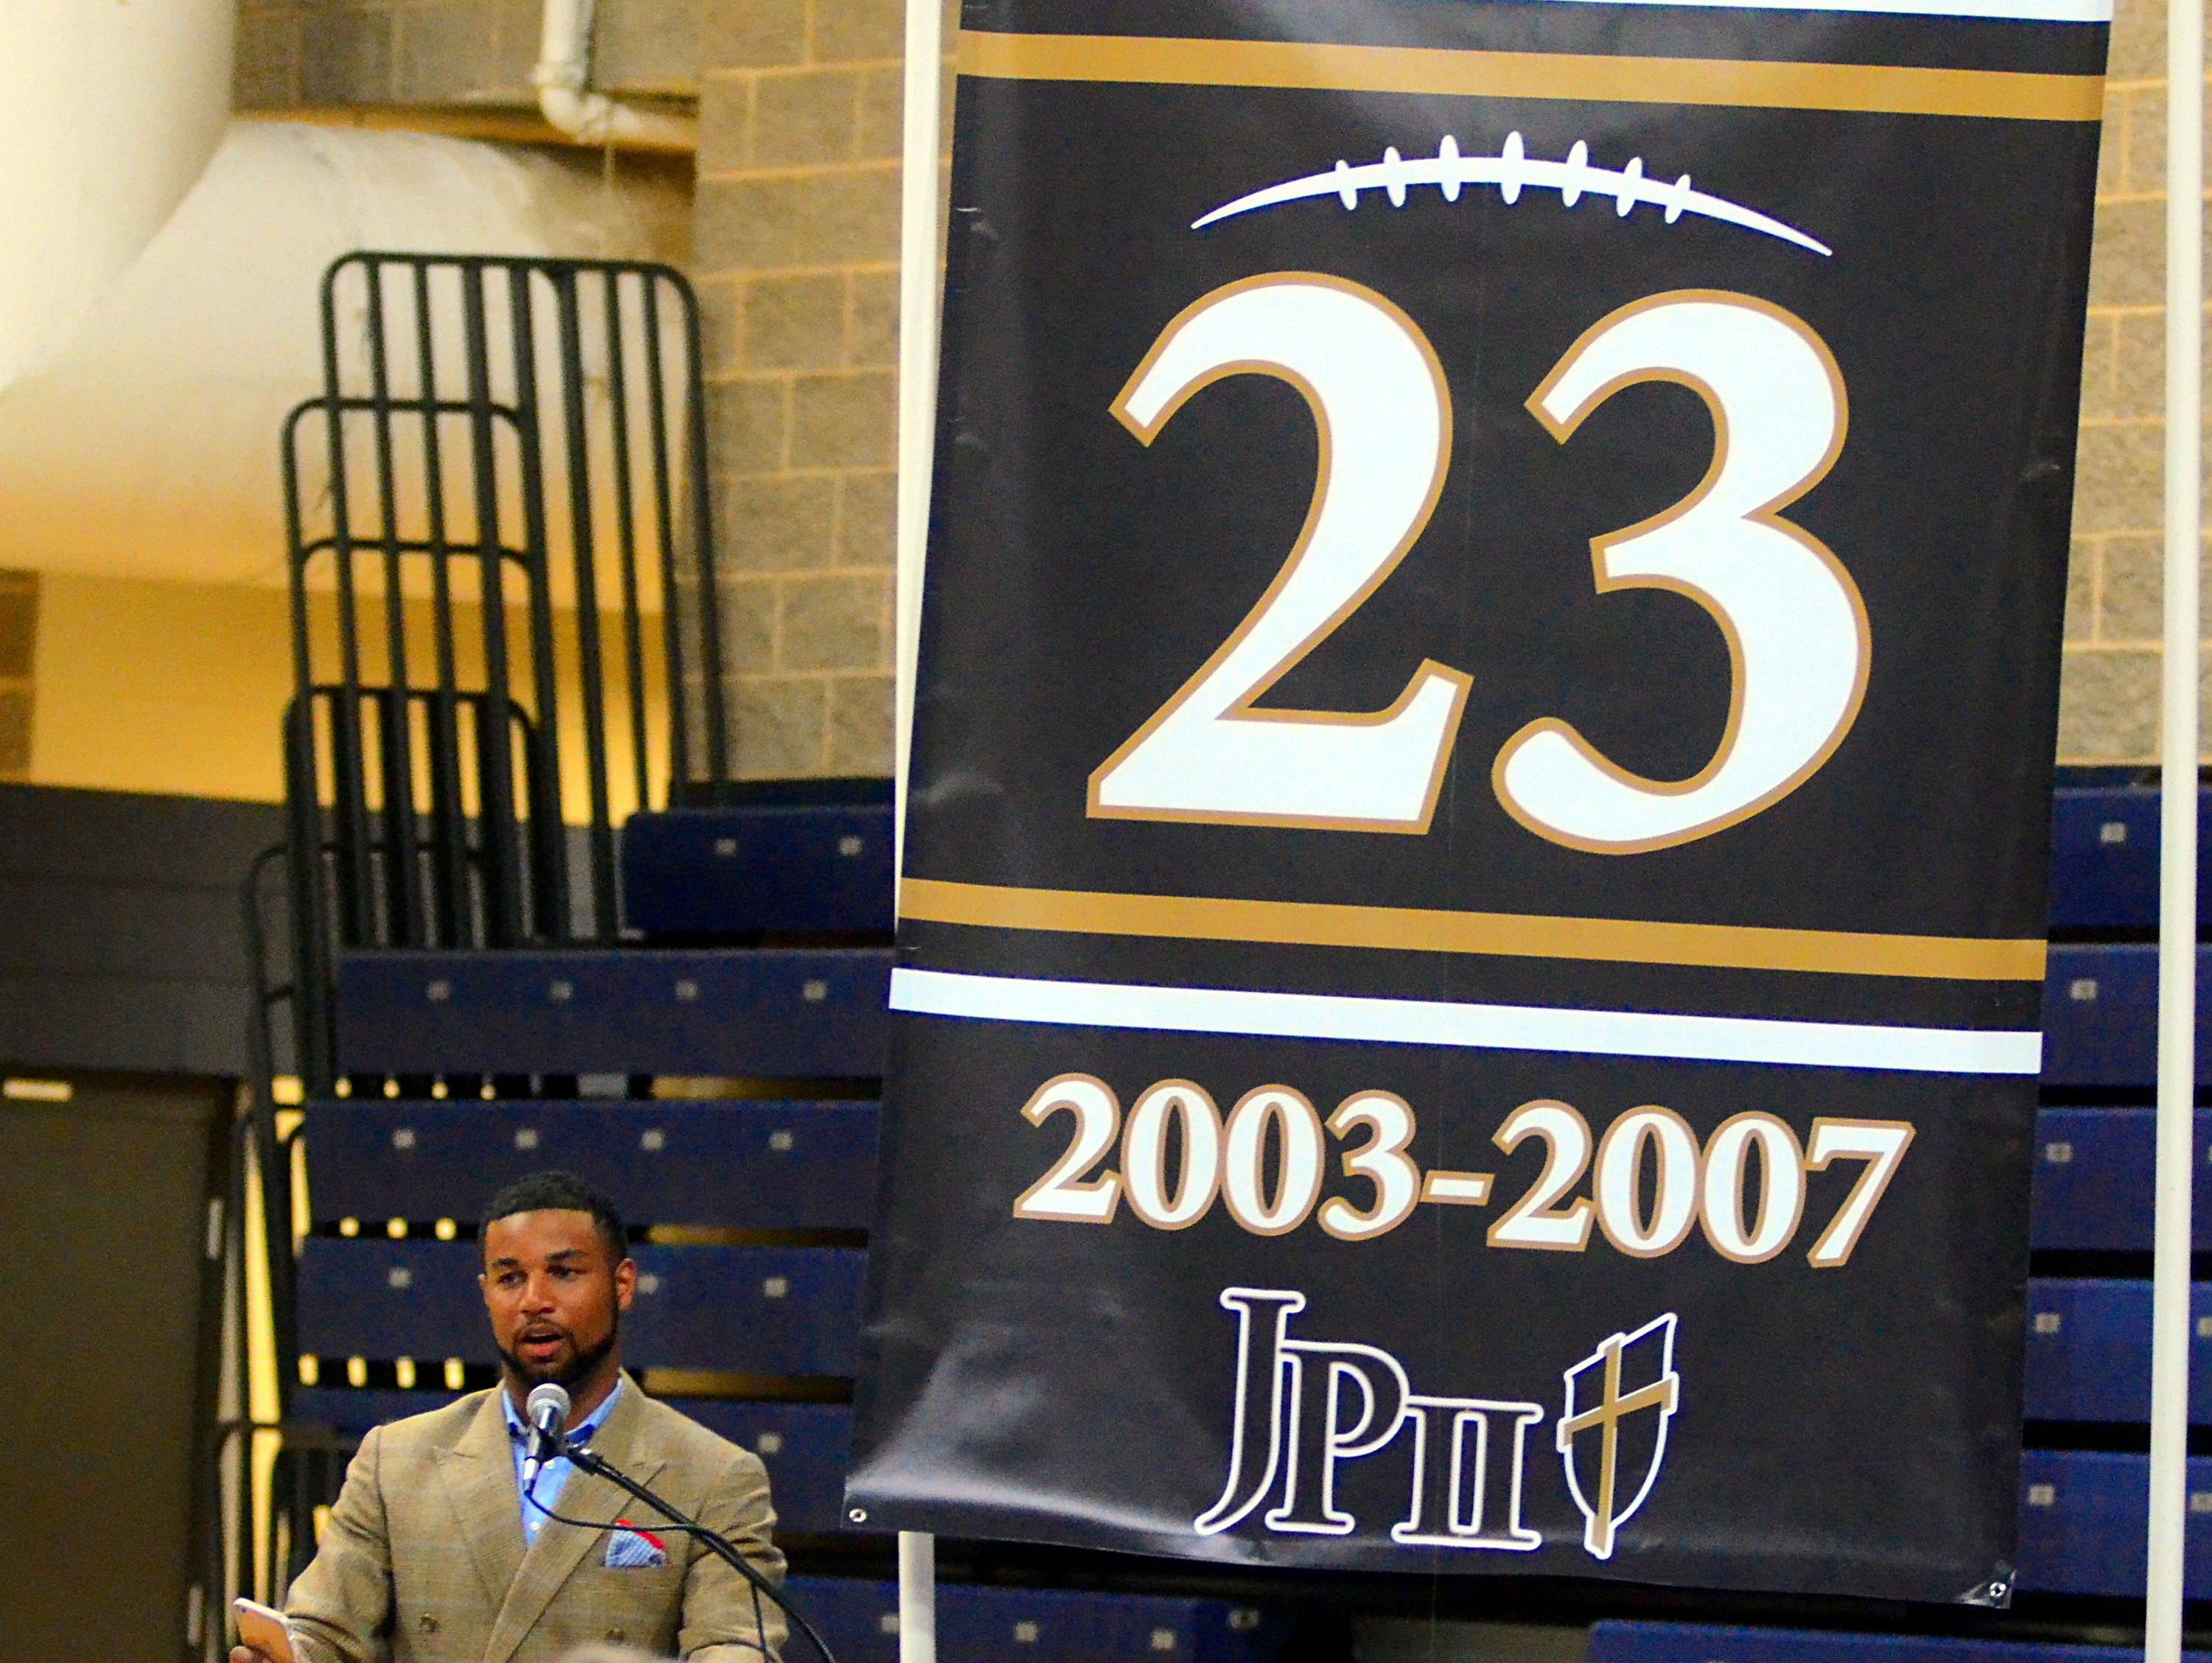 Detroit Lions wide receiver Golden Tate speaks during his jersey-retirement ceremony on Thursday evening at Pope John Paul II High.